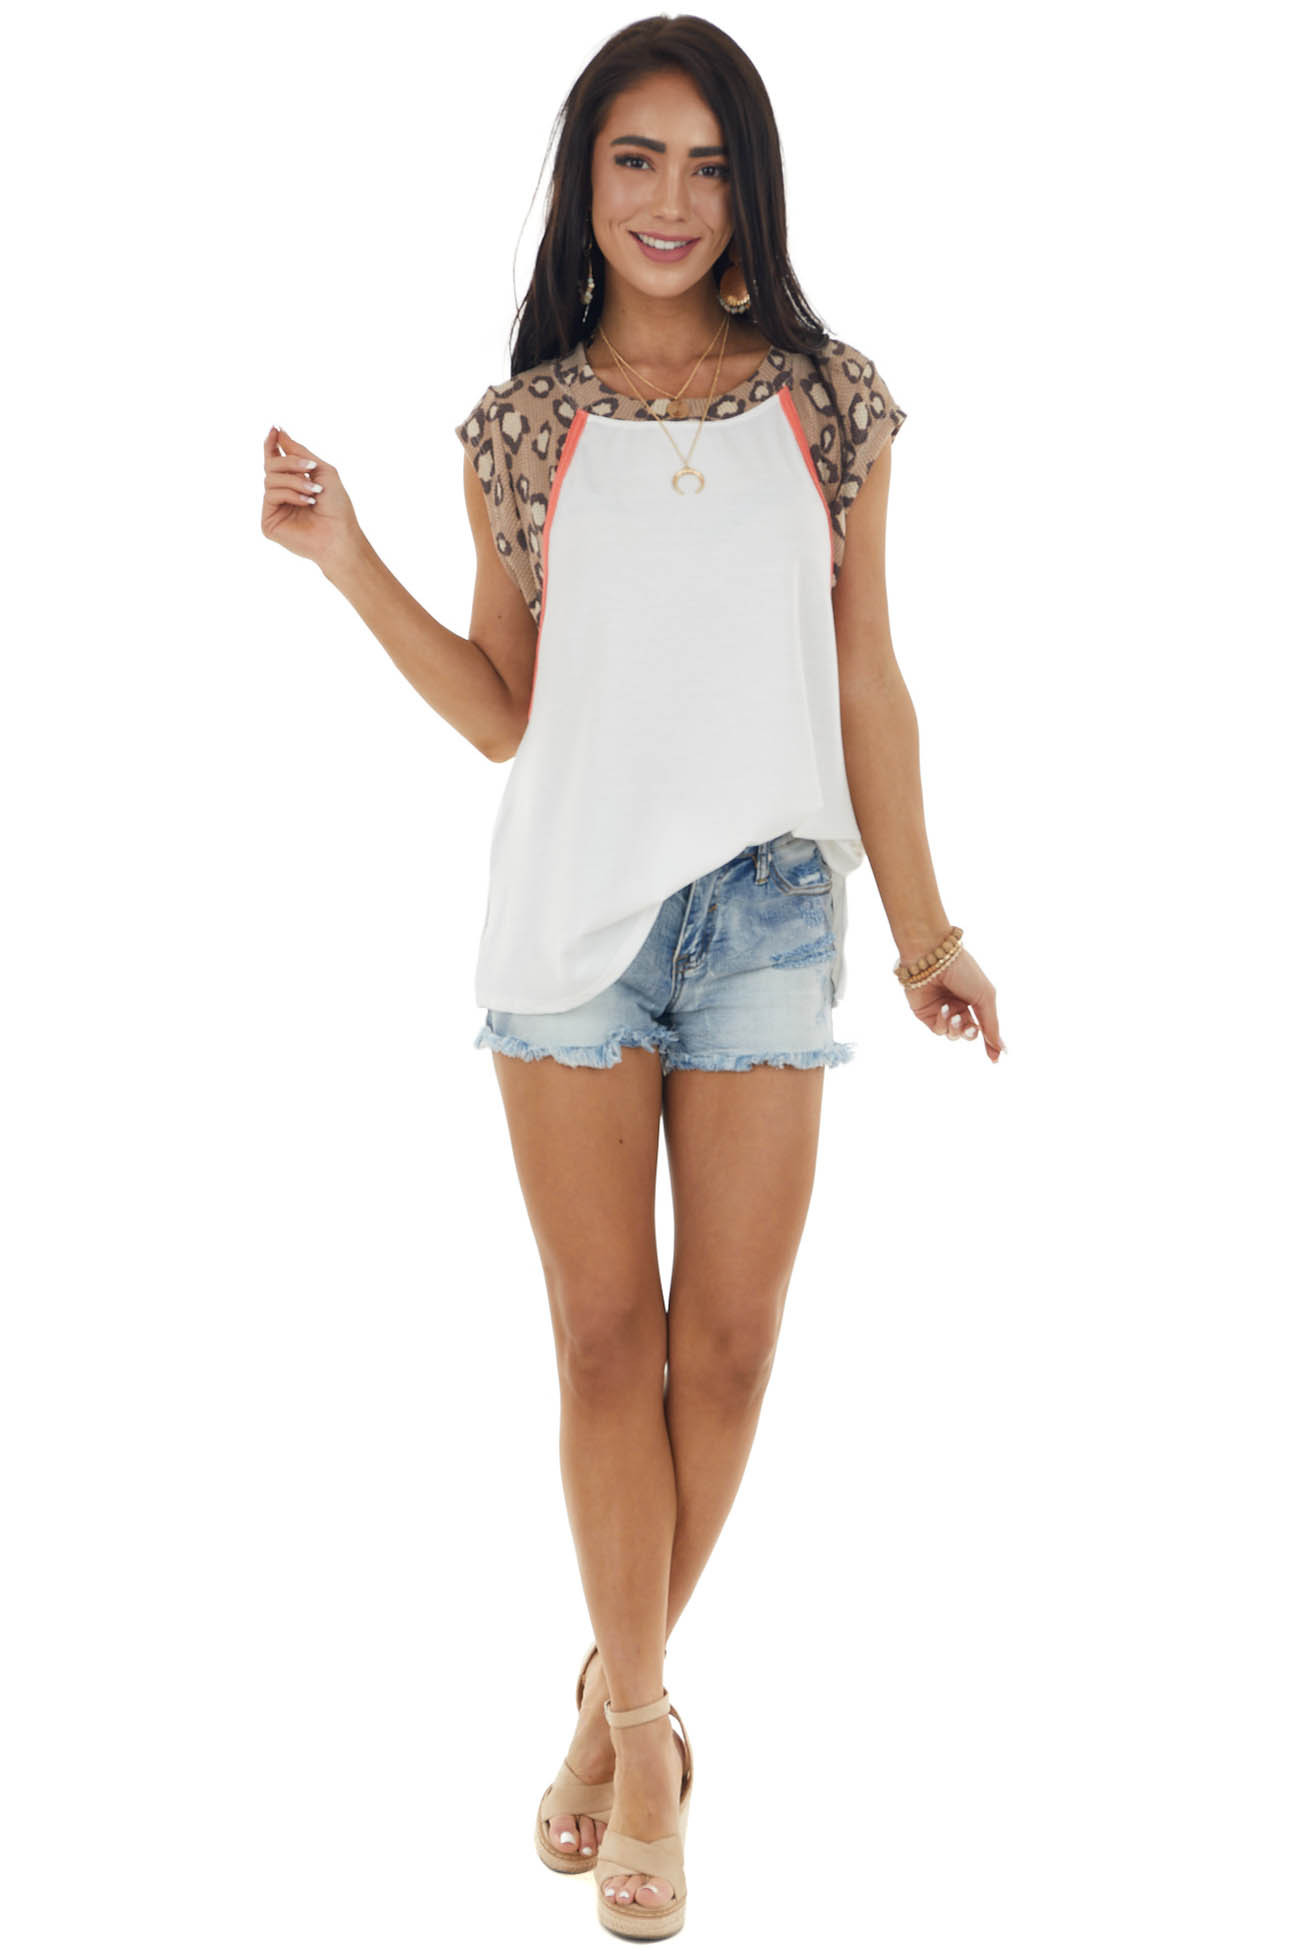 Ivory Cap Sleeve Stretchy Knit Top with Leopard Contrast